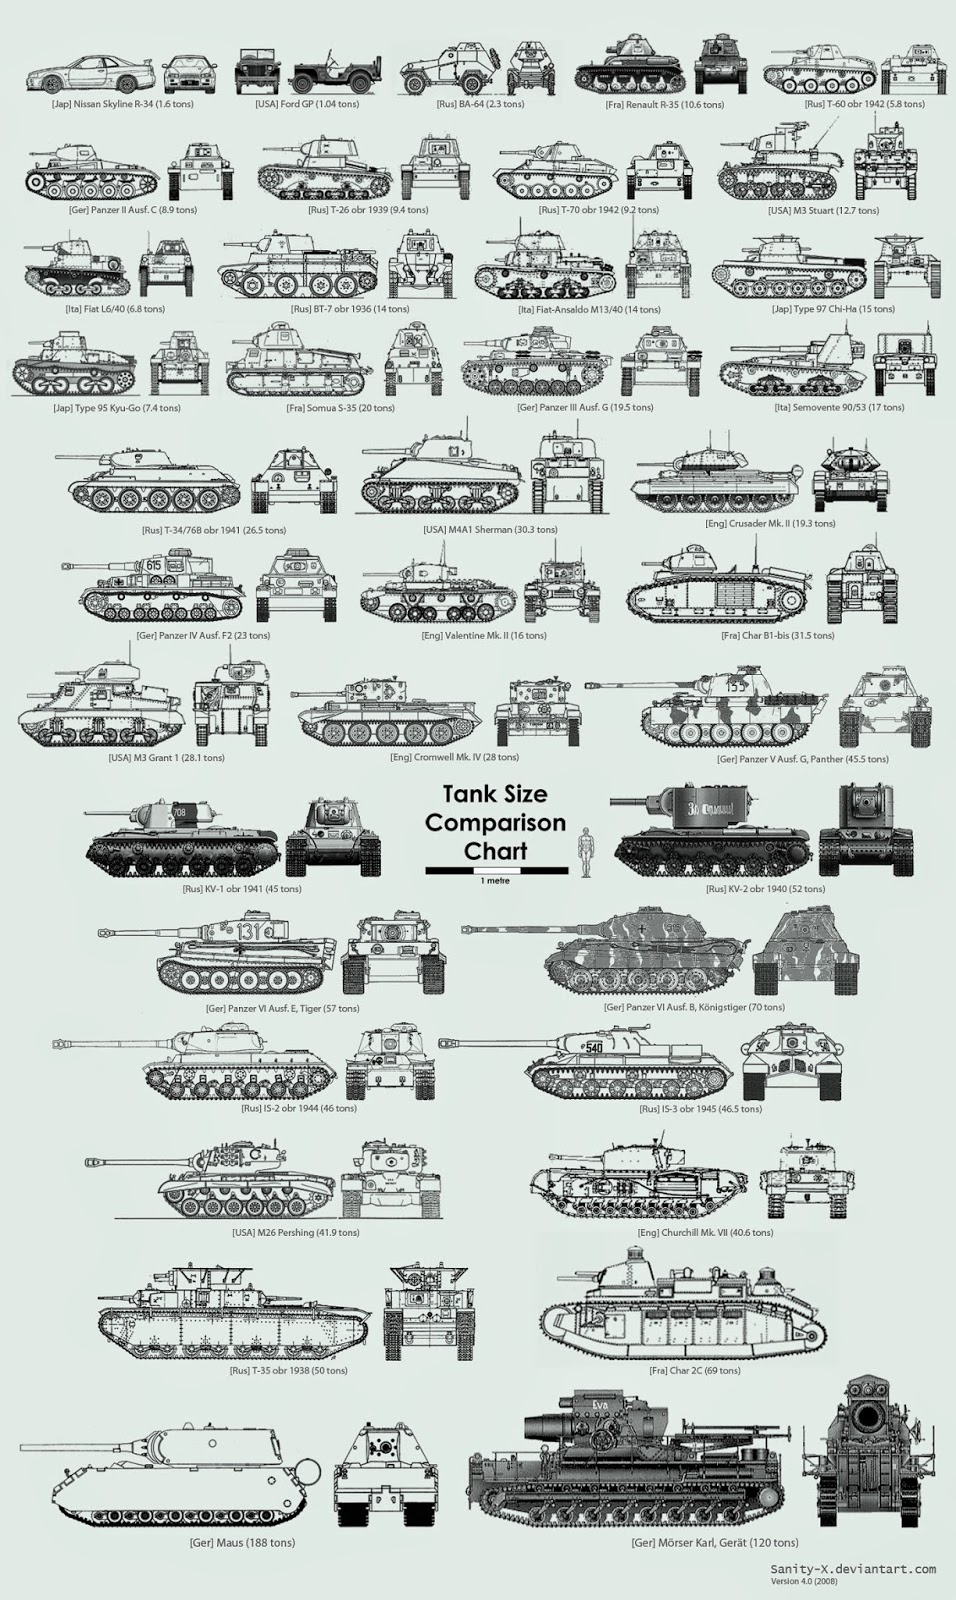 Axis Tanks and Combat Vehicles of World War II: German WW2 AFVs